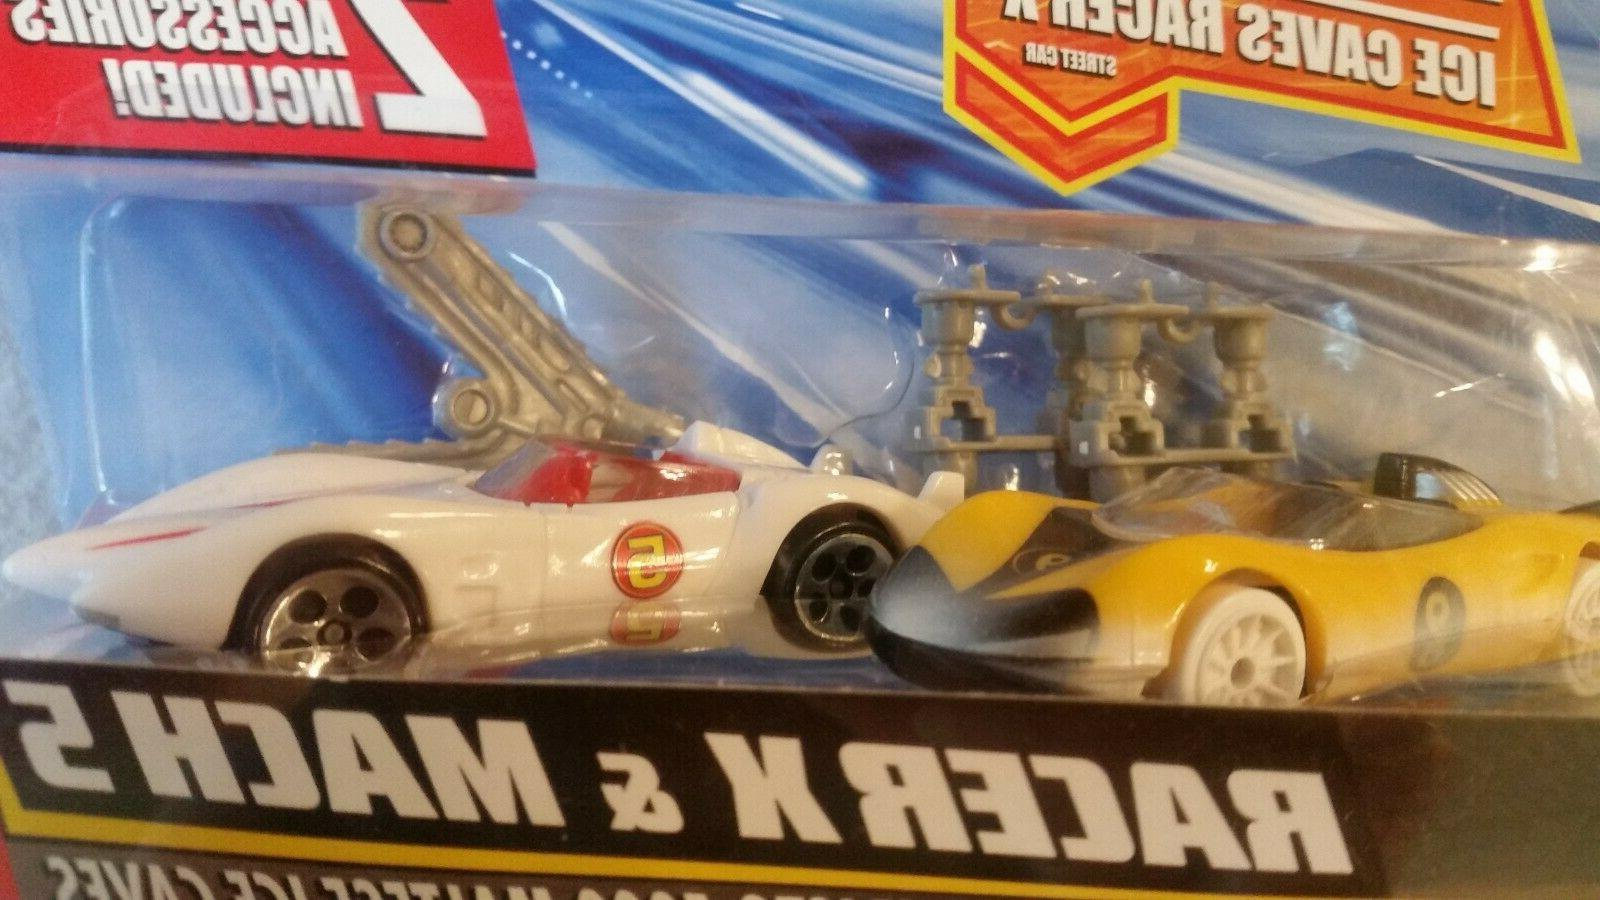 Hot Racer Racer & Mach 5 set with accessories